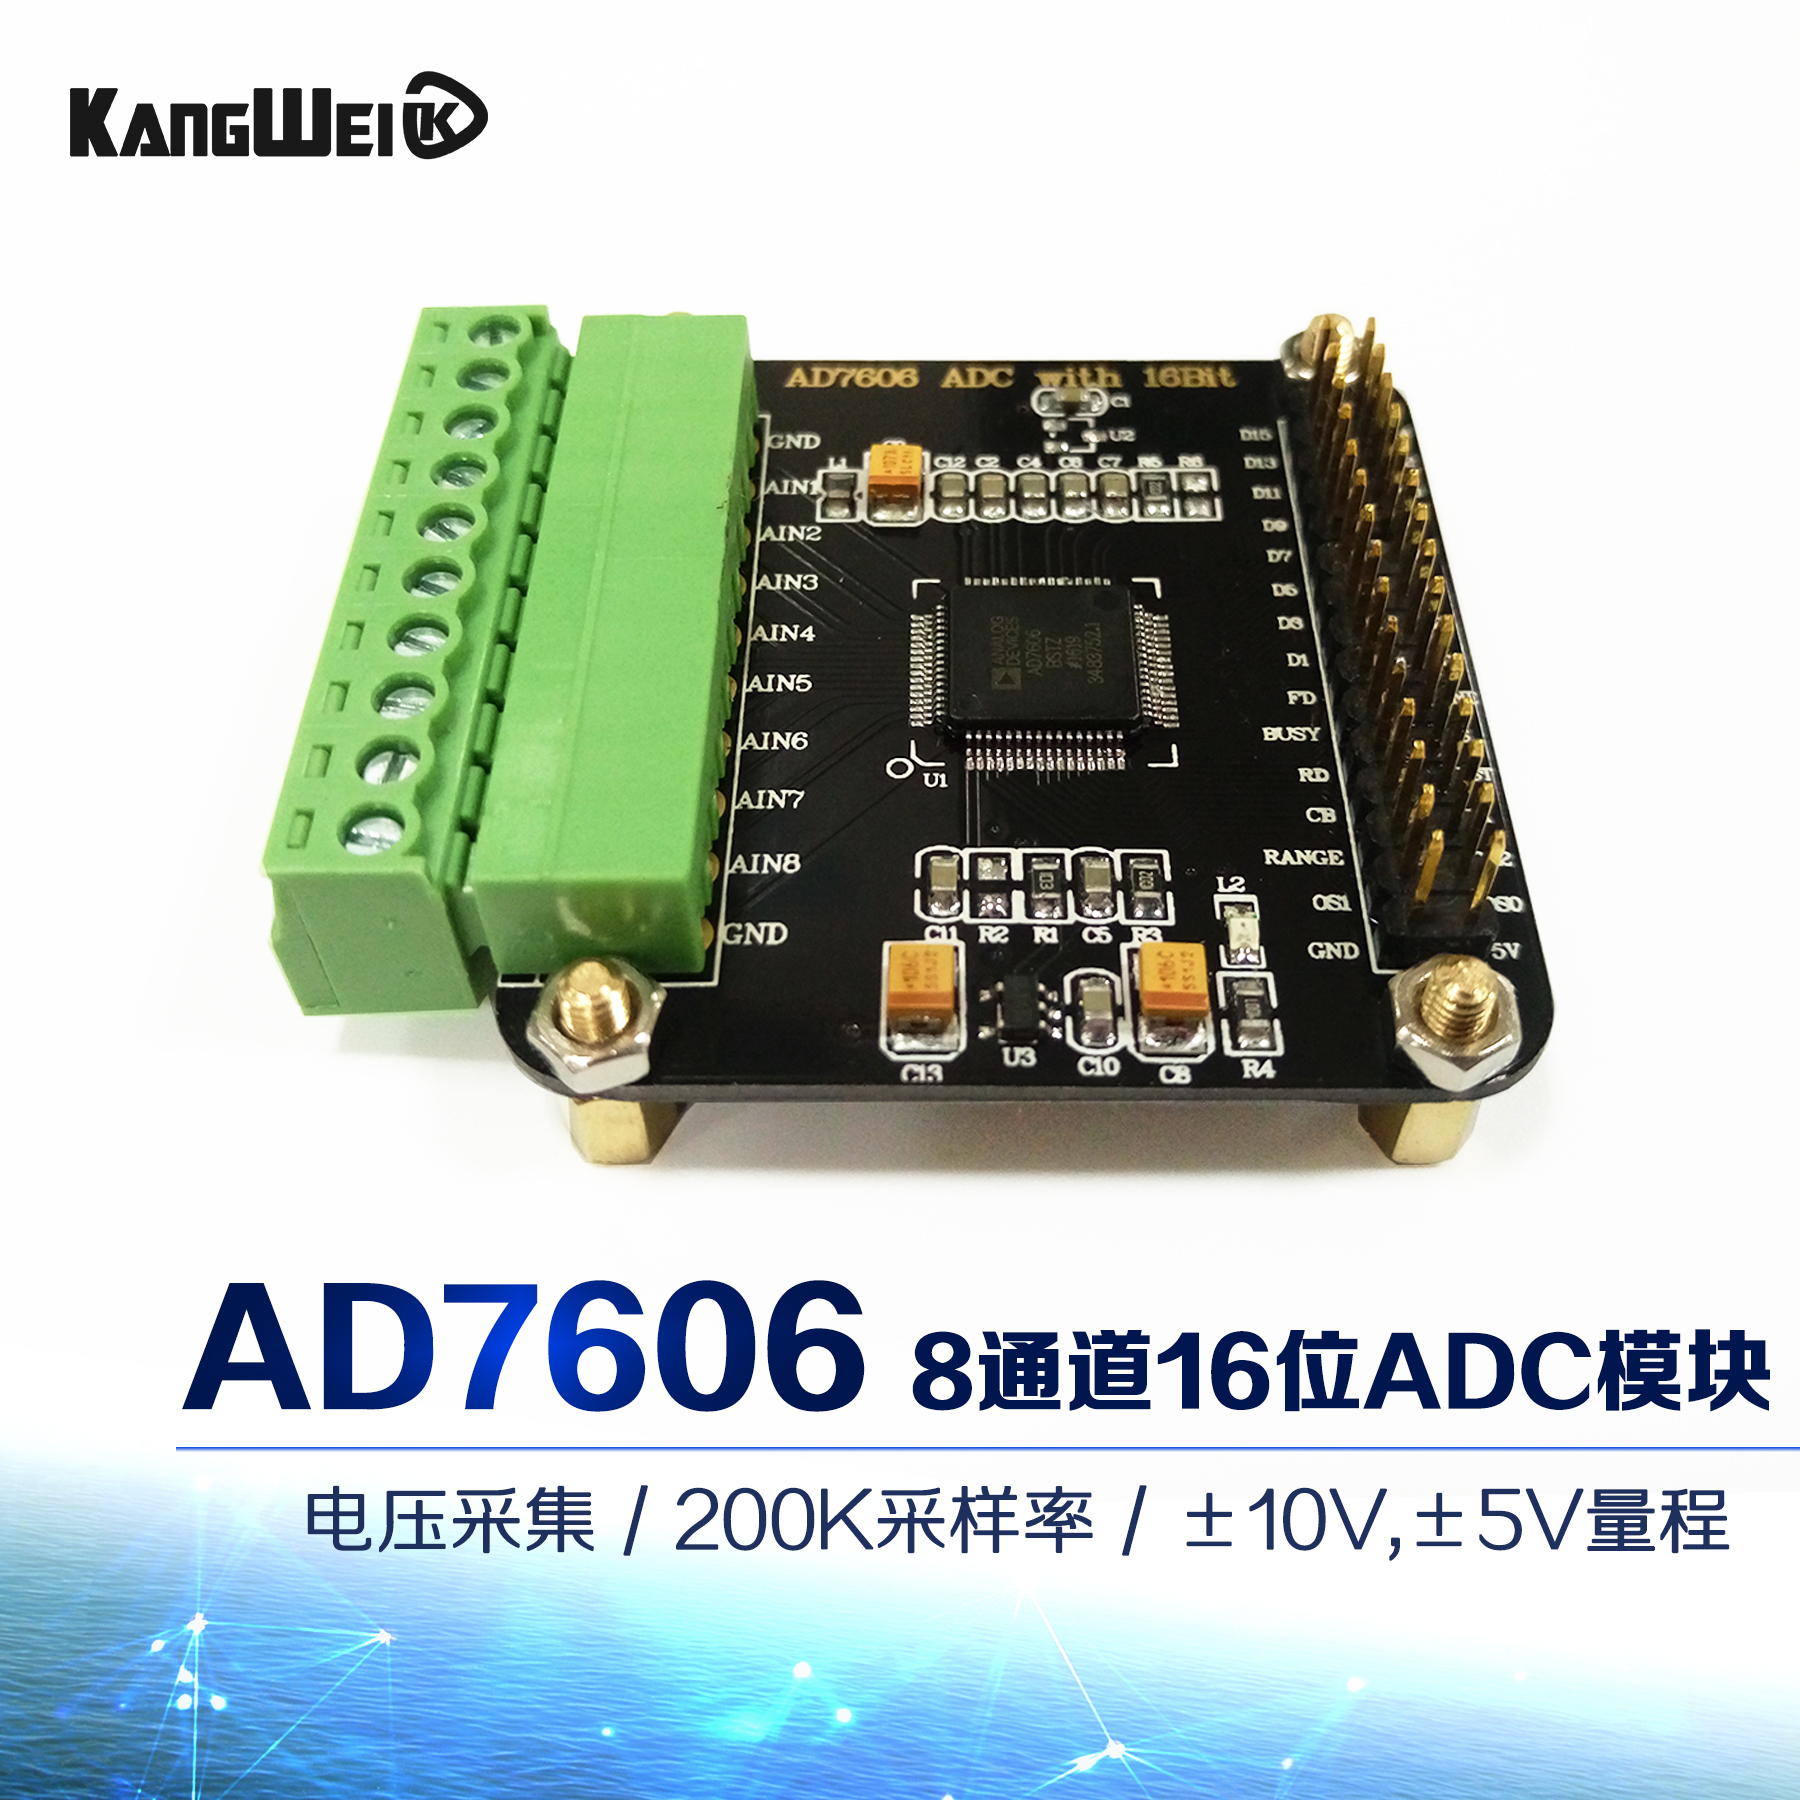 AD7606 multi-channel AD data acquisition module, 16 bit ADC, 8 way synchronous sampling frequency, 200KHz<br>